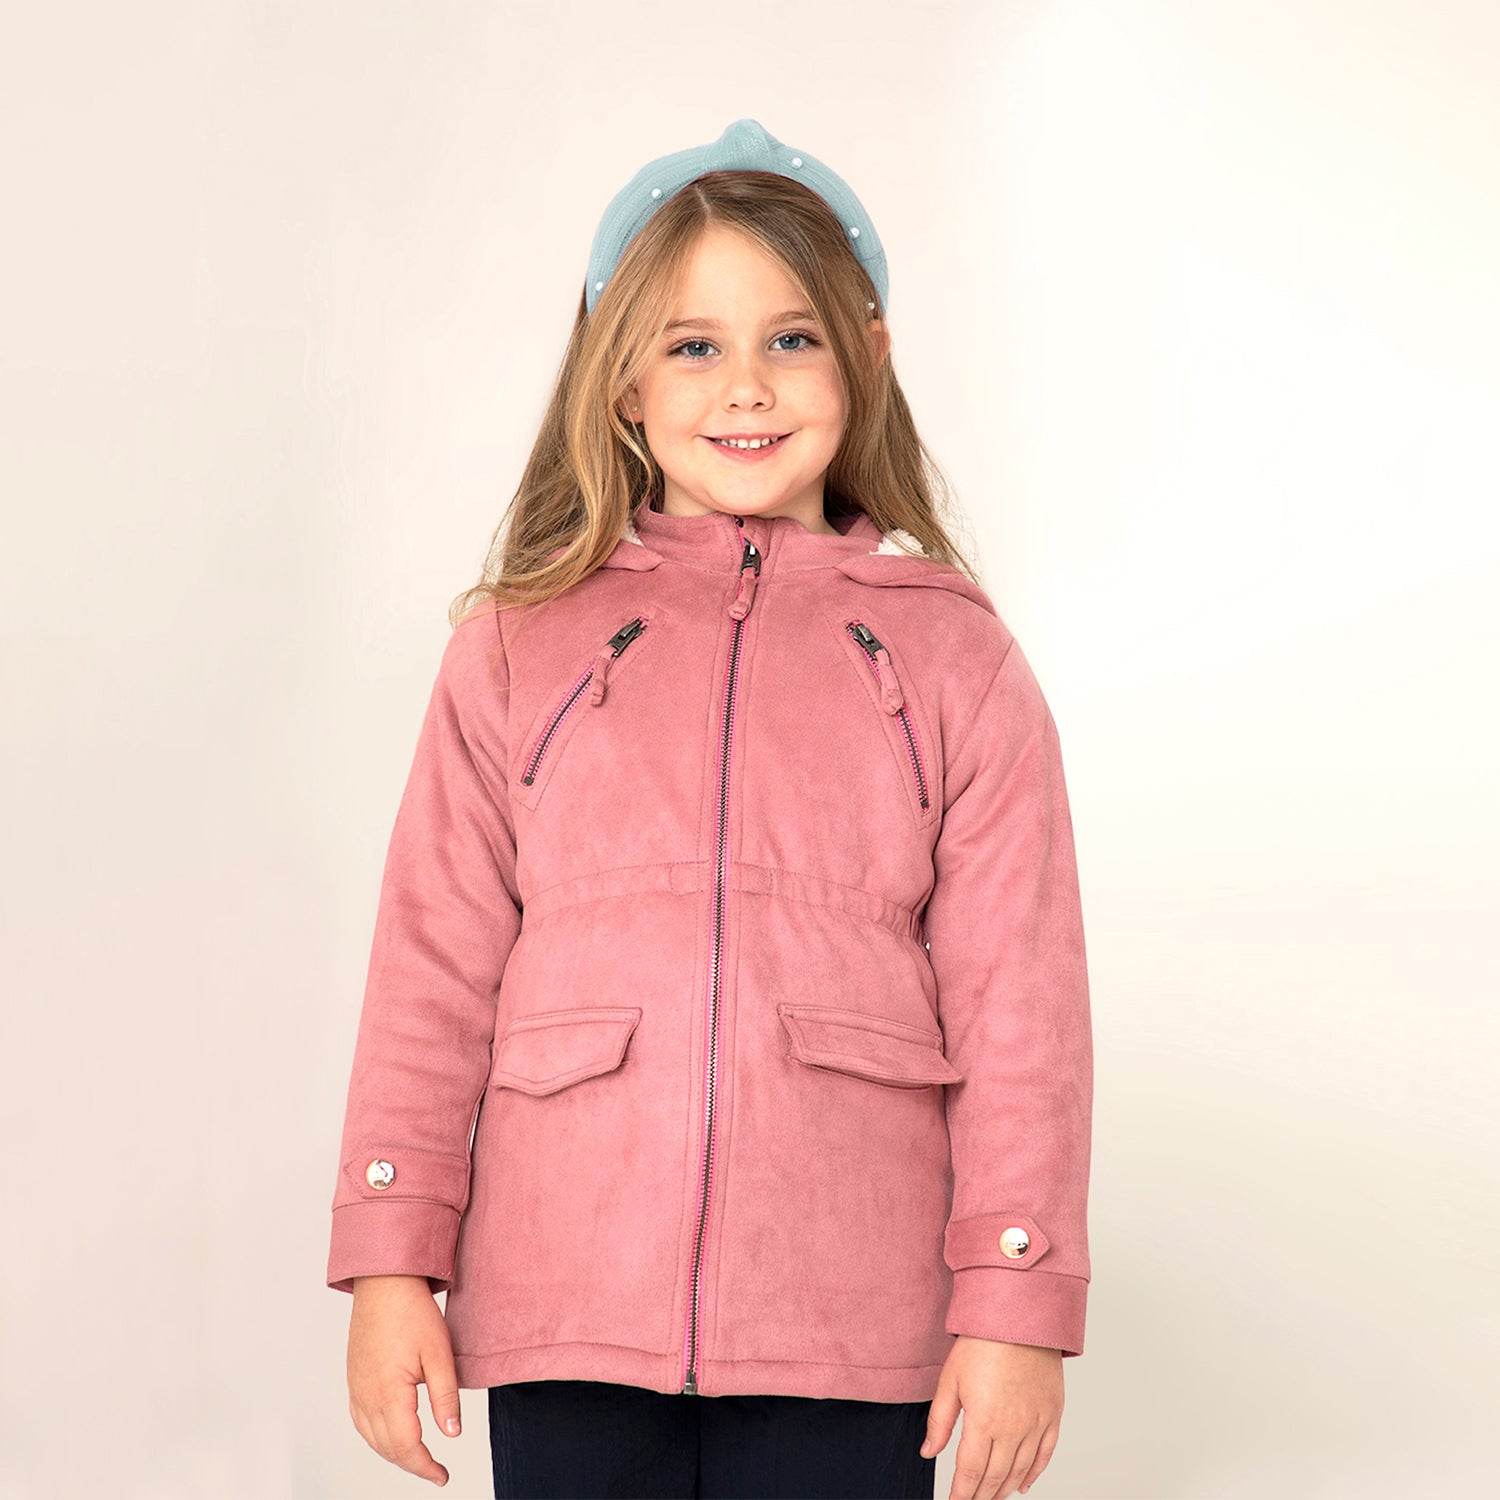 Pastel Longline Jacket for Girls